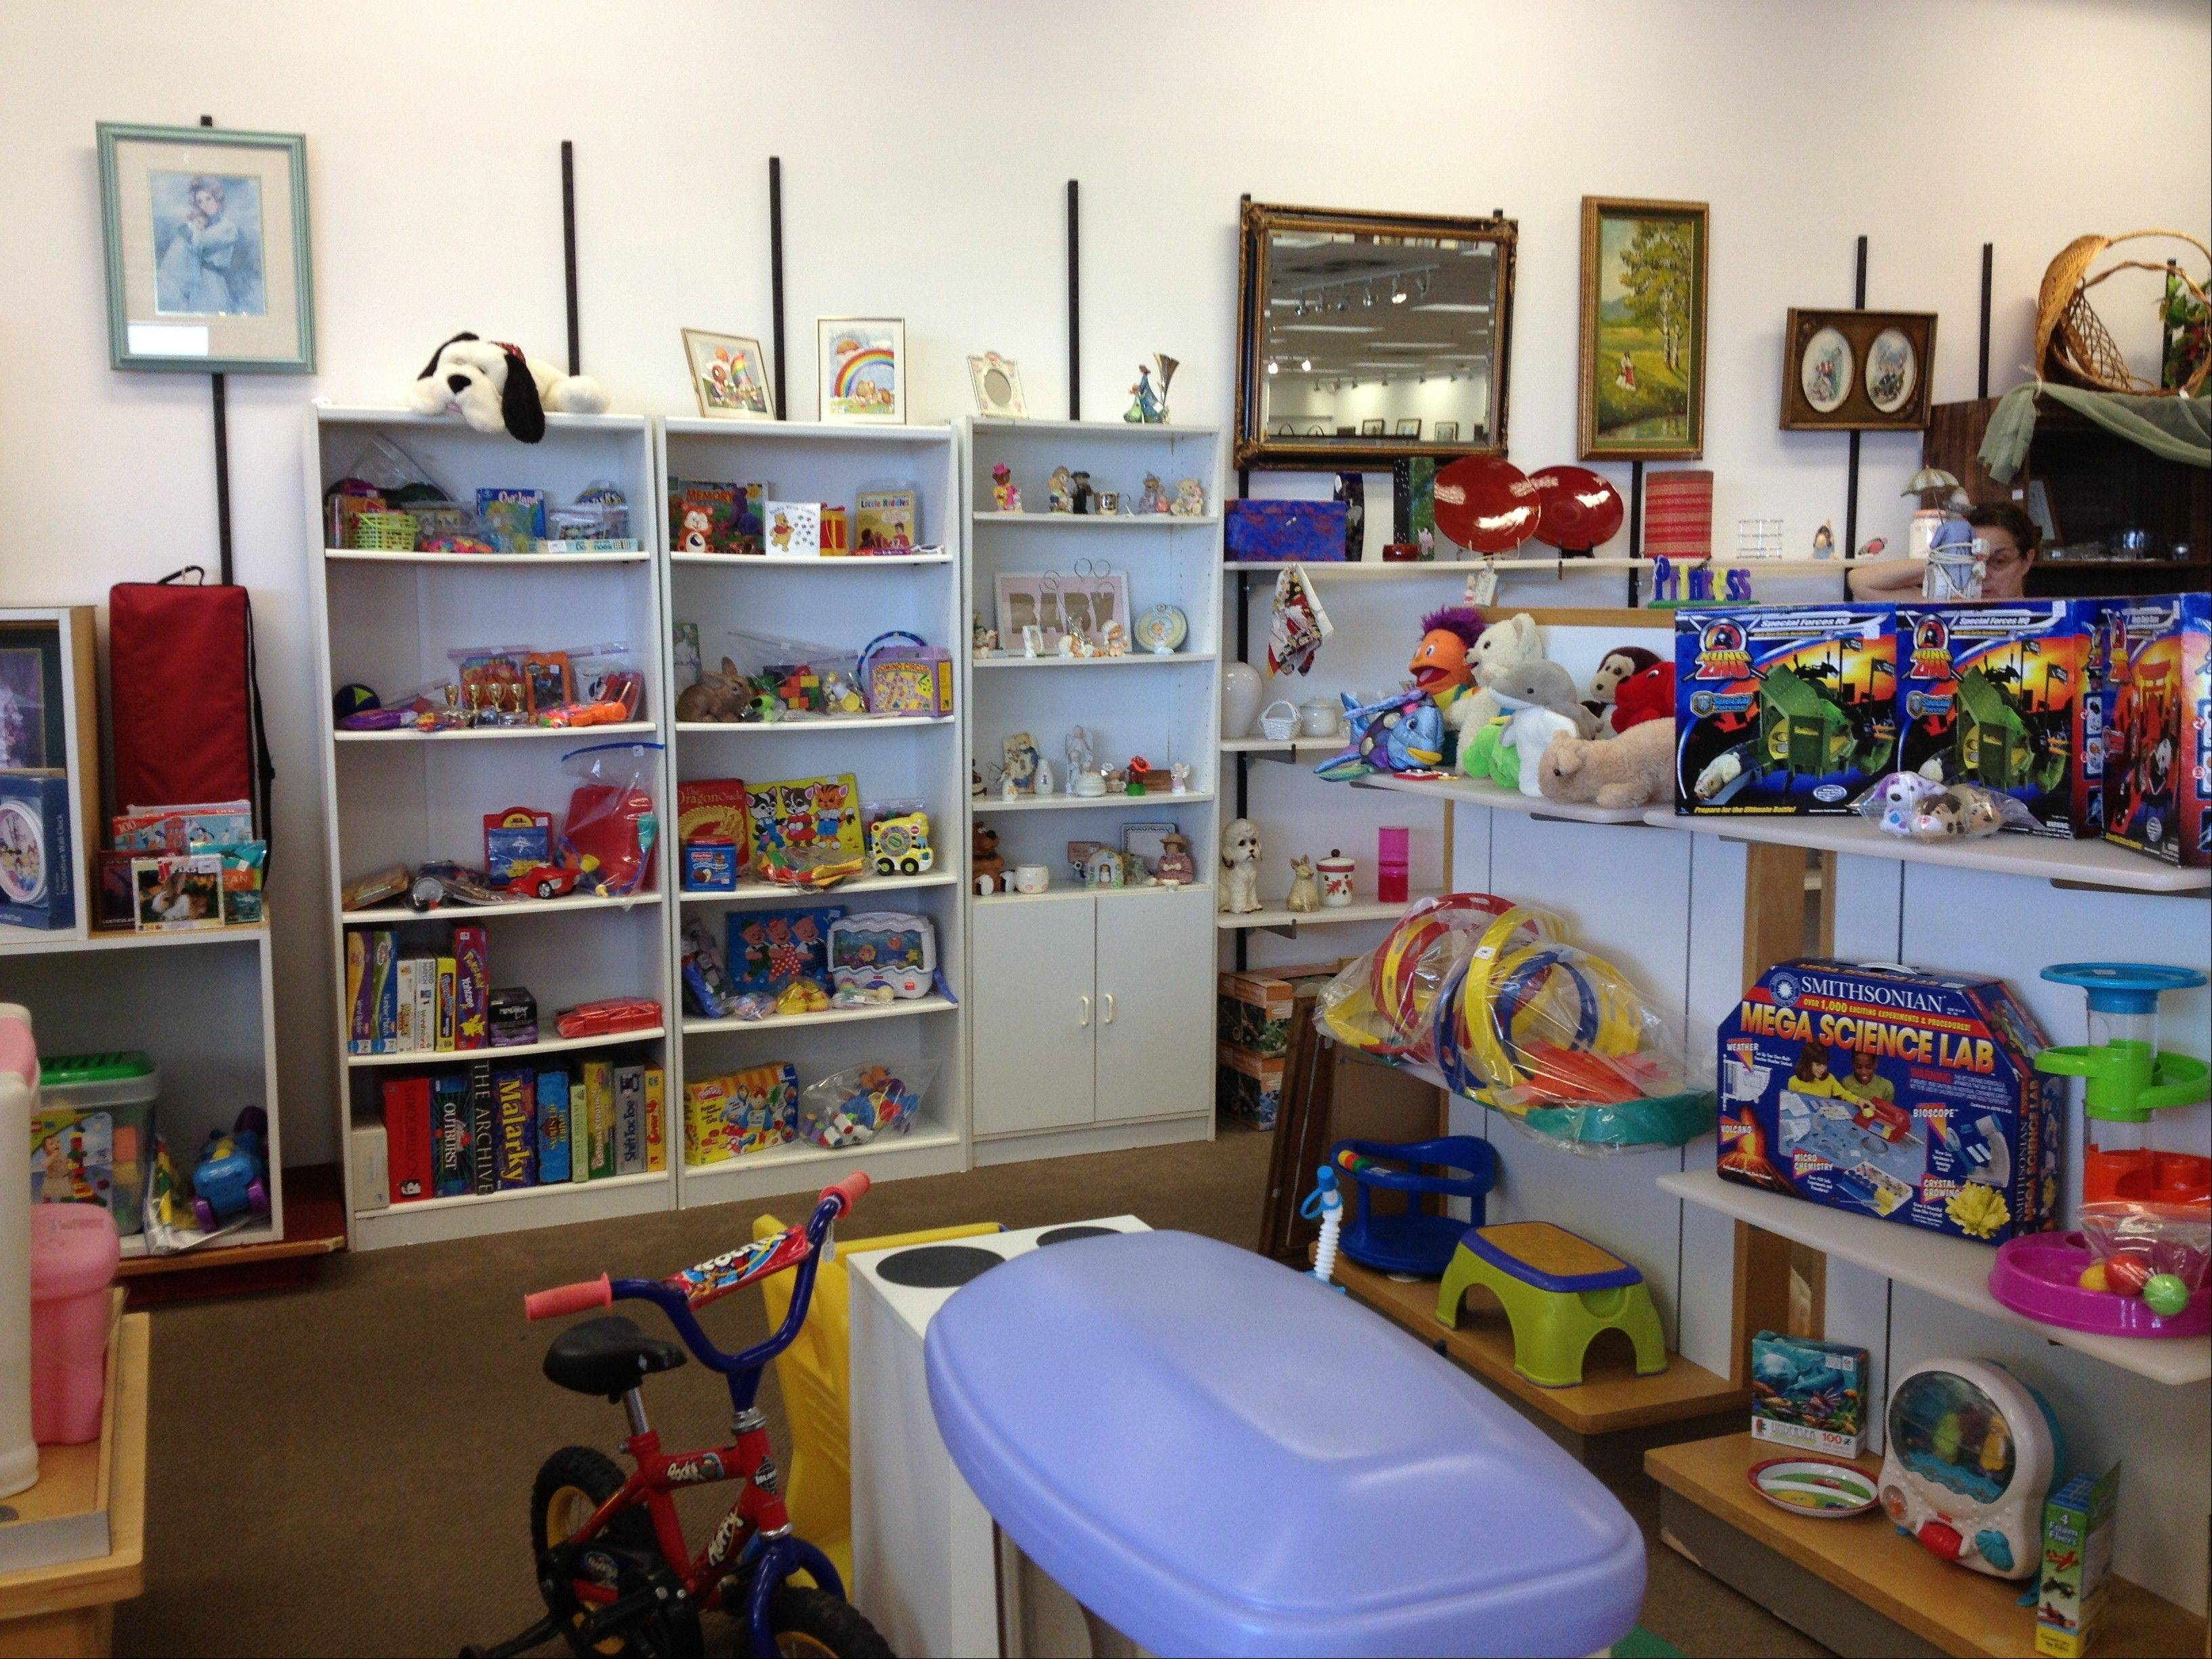 Sweet Repeats Thrift Shoppe, now located in the Huntley Outlet Center, sells new and gently used items, including books, toys, furniture and appliances. The store is holding its grand opening Friday through Sunday. It moved to the mall about a month ago from another Huntley location.